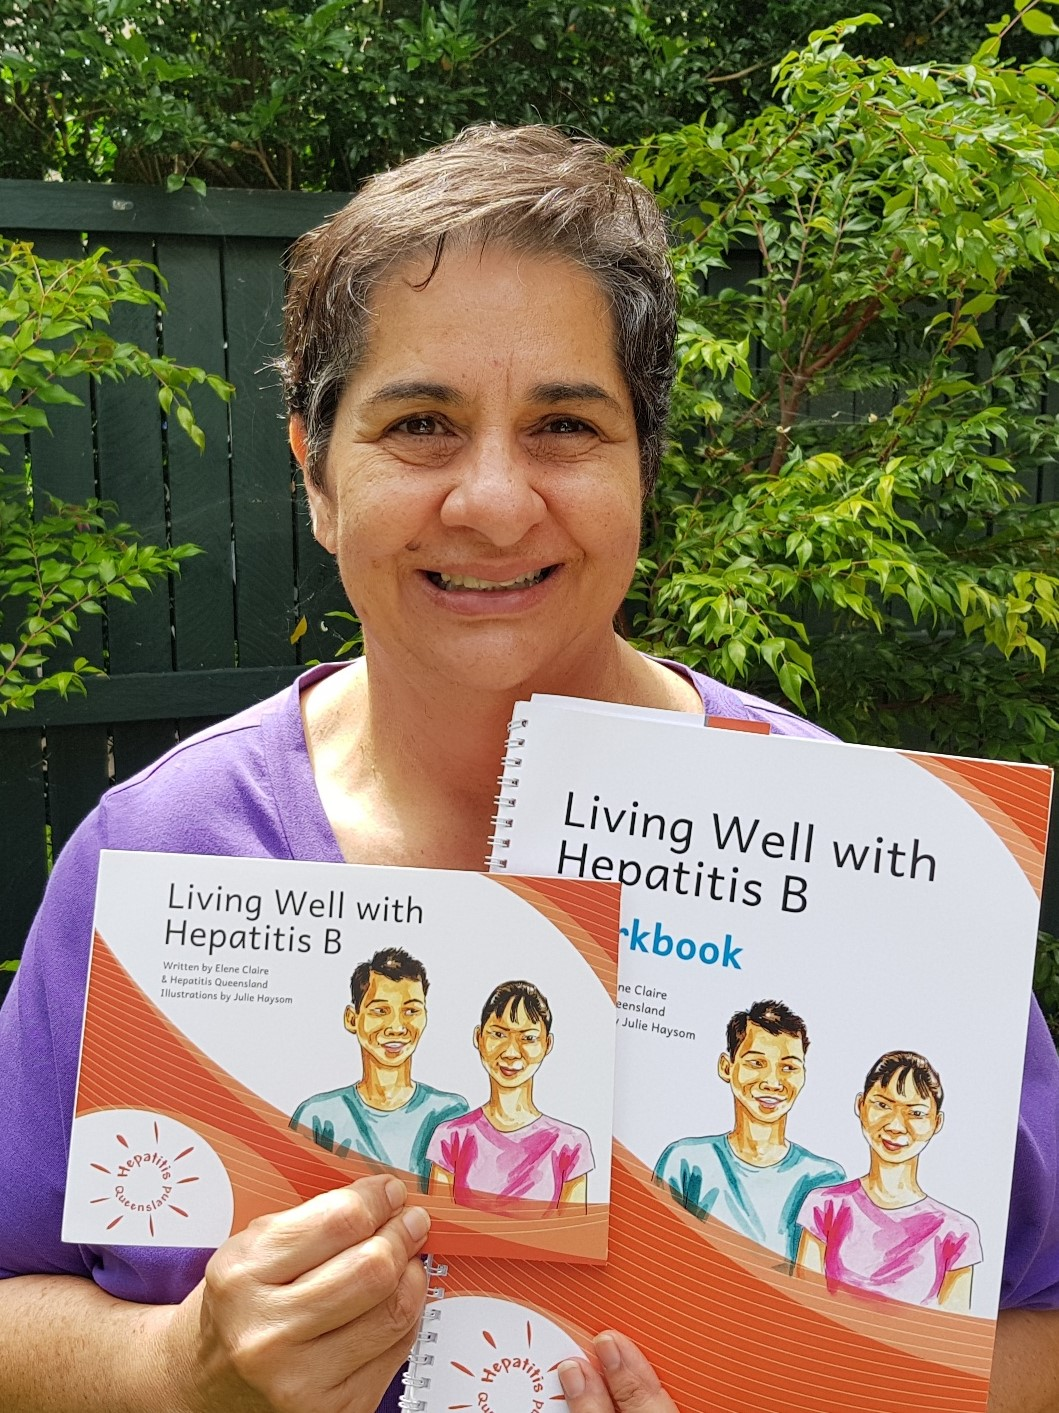 Living Well With Hepatitis B A Chat With Elene Claire